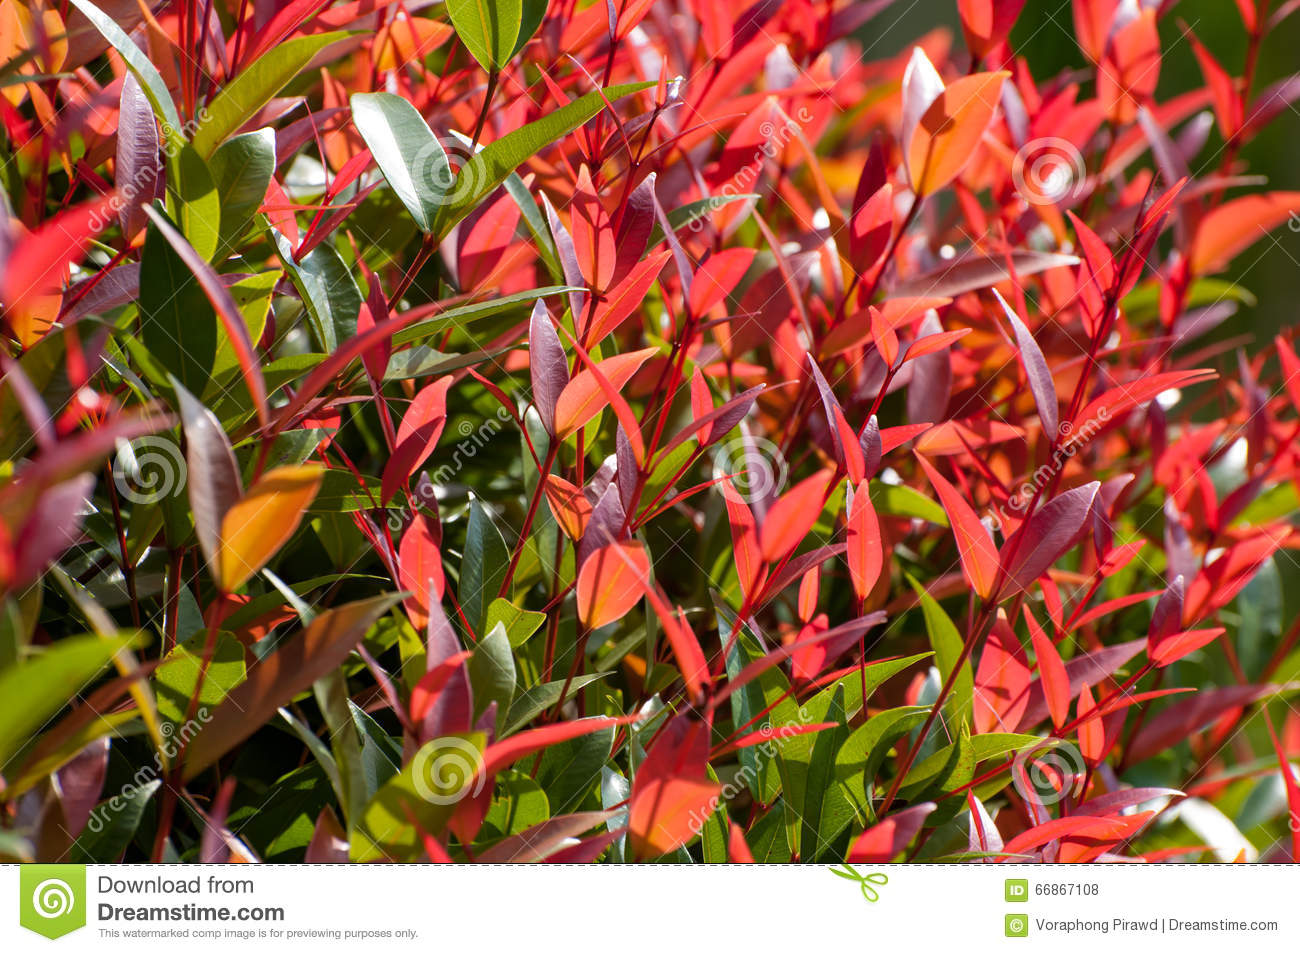 Free Fall Foliage Wallpaper Red And Green Leaves On Bush Stock Photo Image Of